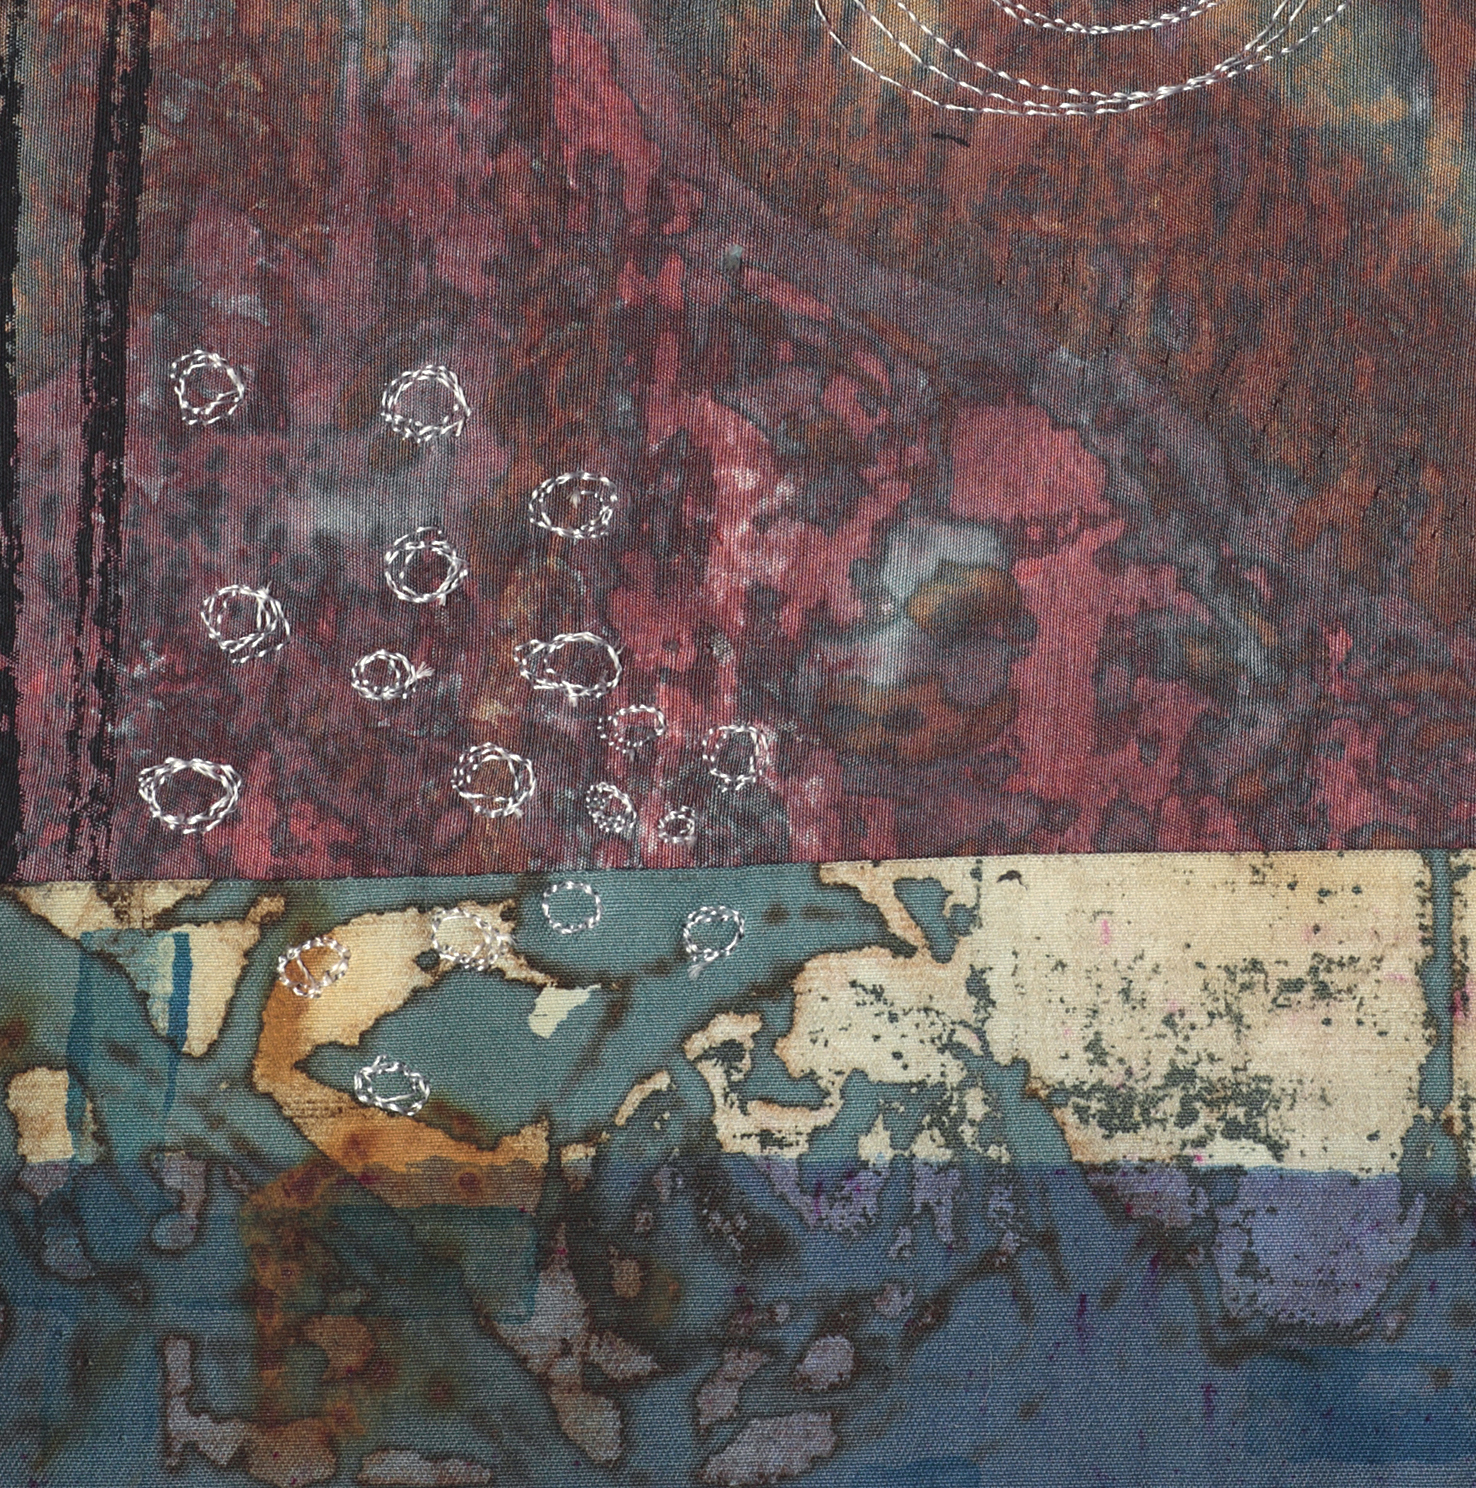 Small Work 11 detail  8x7 inches